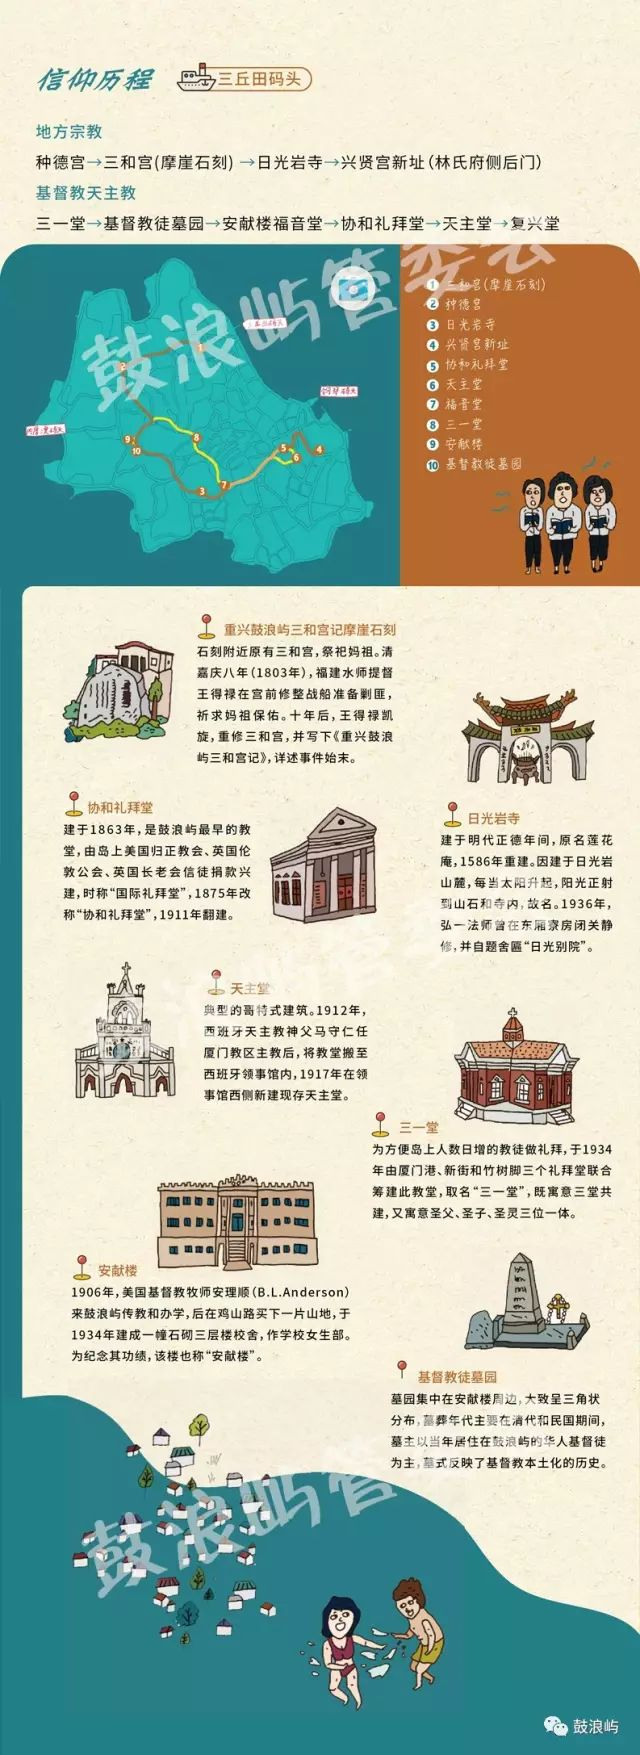 Experience Kulangsu: Introducing Four Cultural Heritage Routes (including a detailed road map)